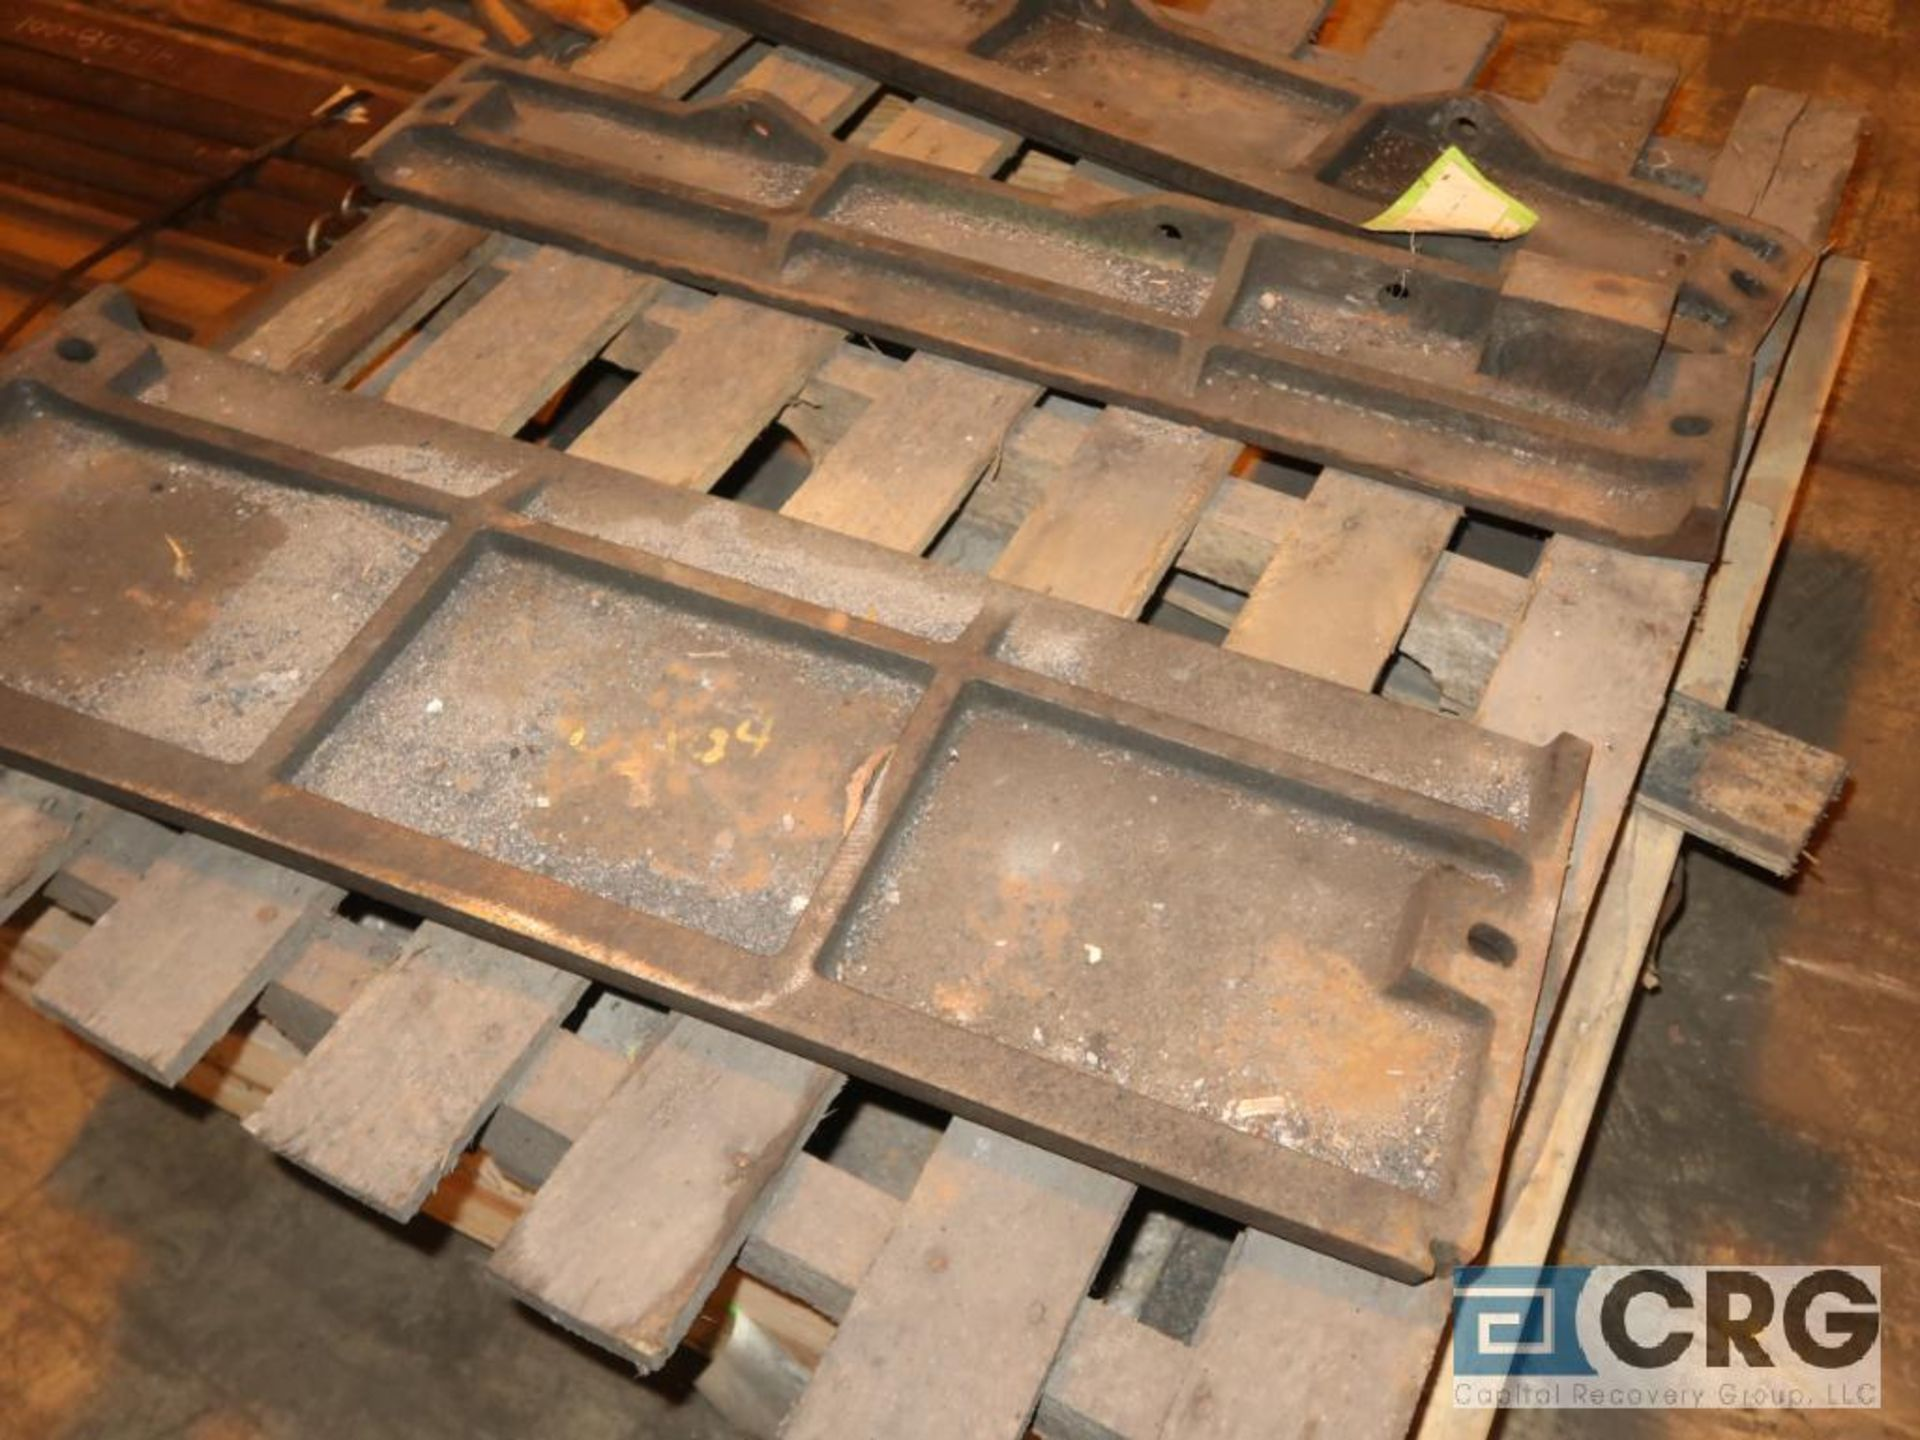 Lot of assorted parts for debarker, coal, and chipper on (29) pallets (Next Bay Cage Area) - Image 11 of 17